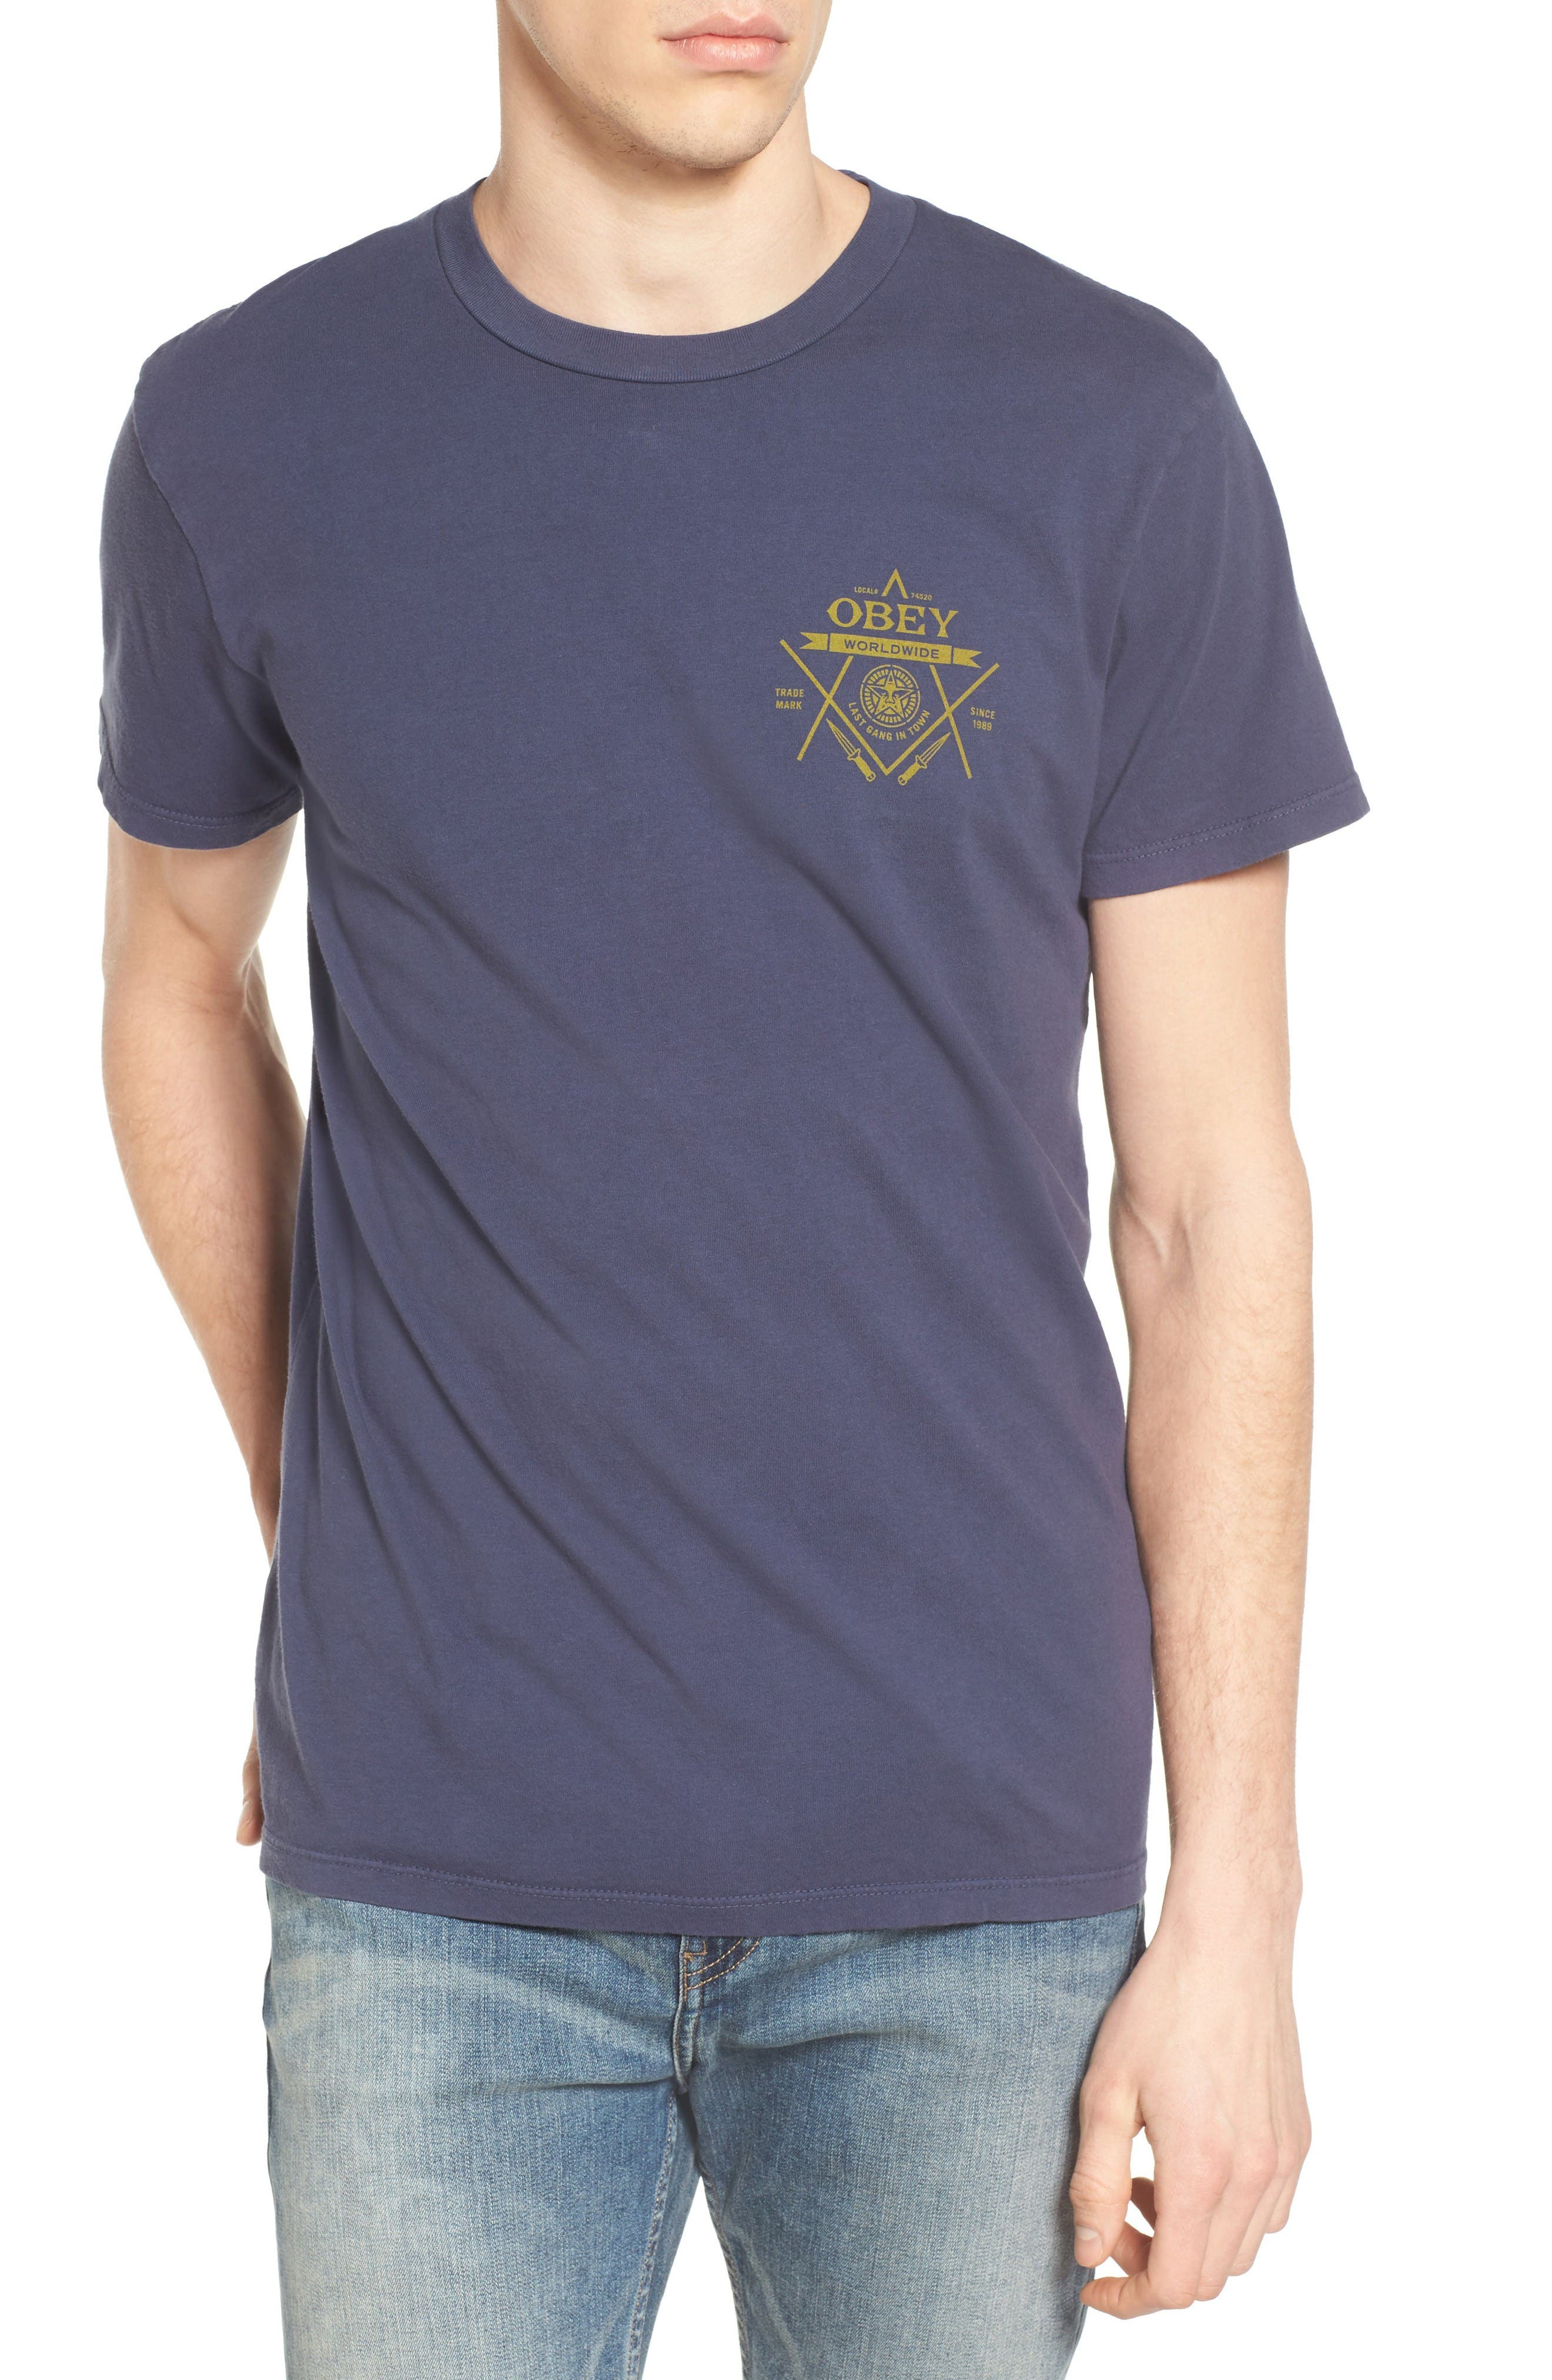 Obey Last Gang Superior T-Shirt